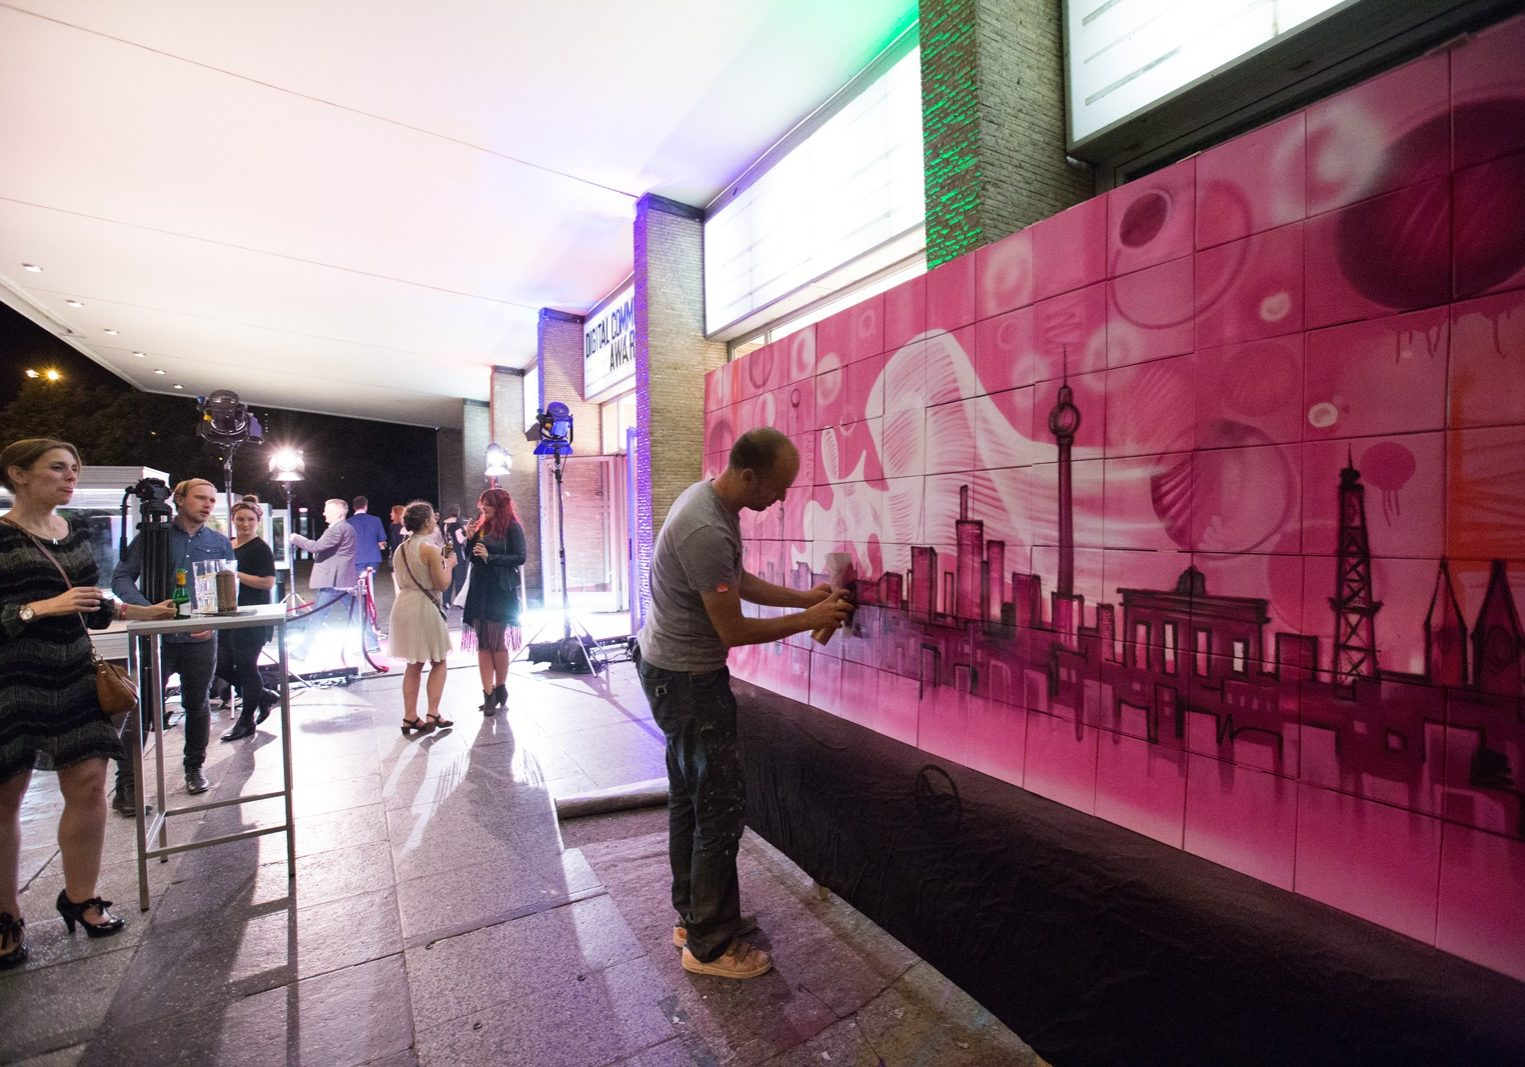 graffitiauftrag, graffitikuenstler, artmos4, dca, event, skyline, berlin, pink, illustrativ